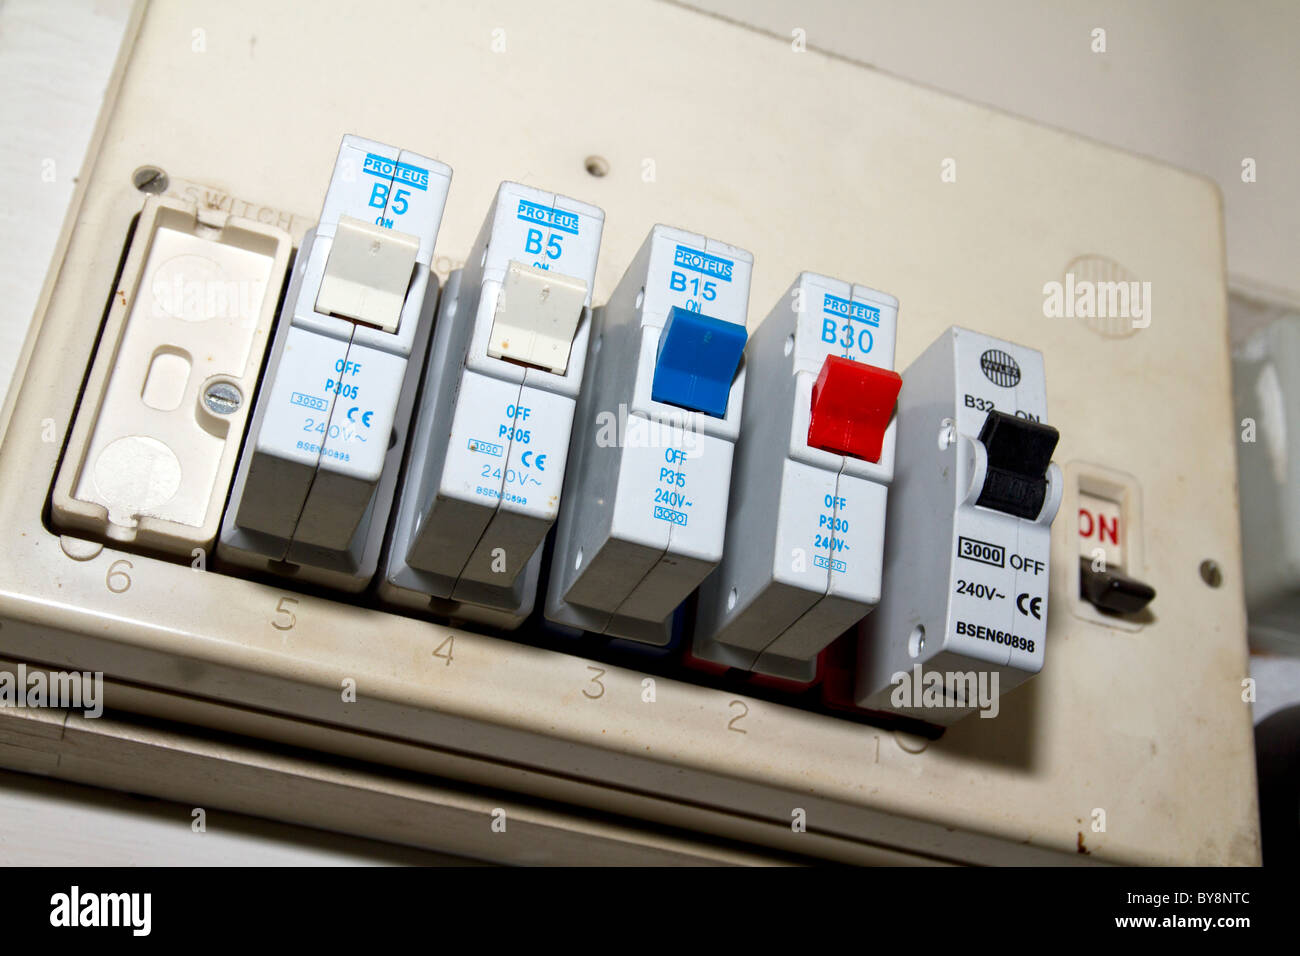 Fuse Box In House - Wiring Diagram List Old Home Fuse Box on old home antenna, old home gas tank, old home front door, old home generator,